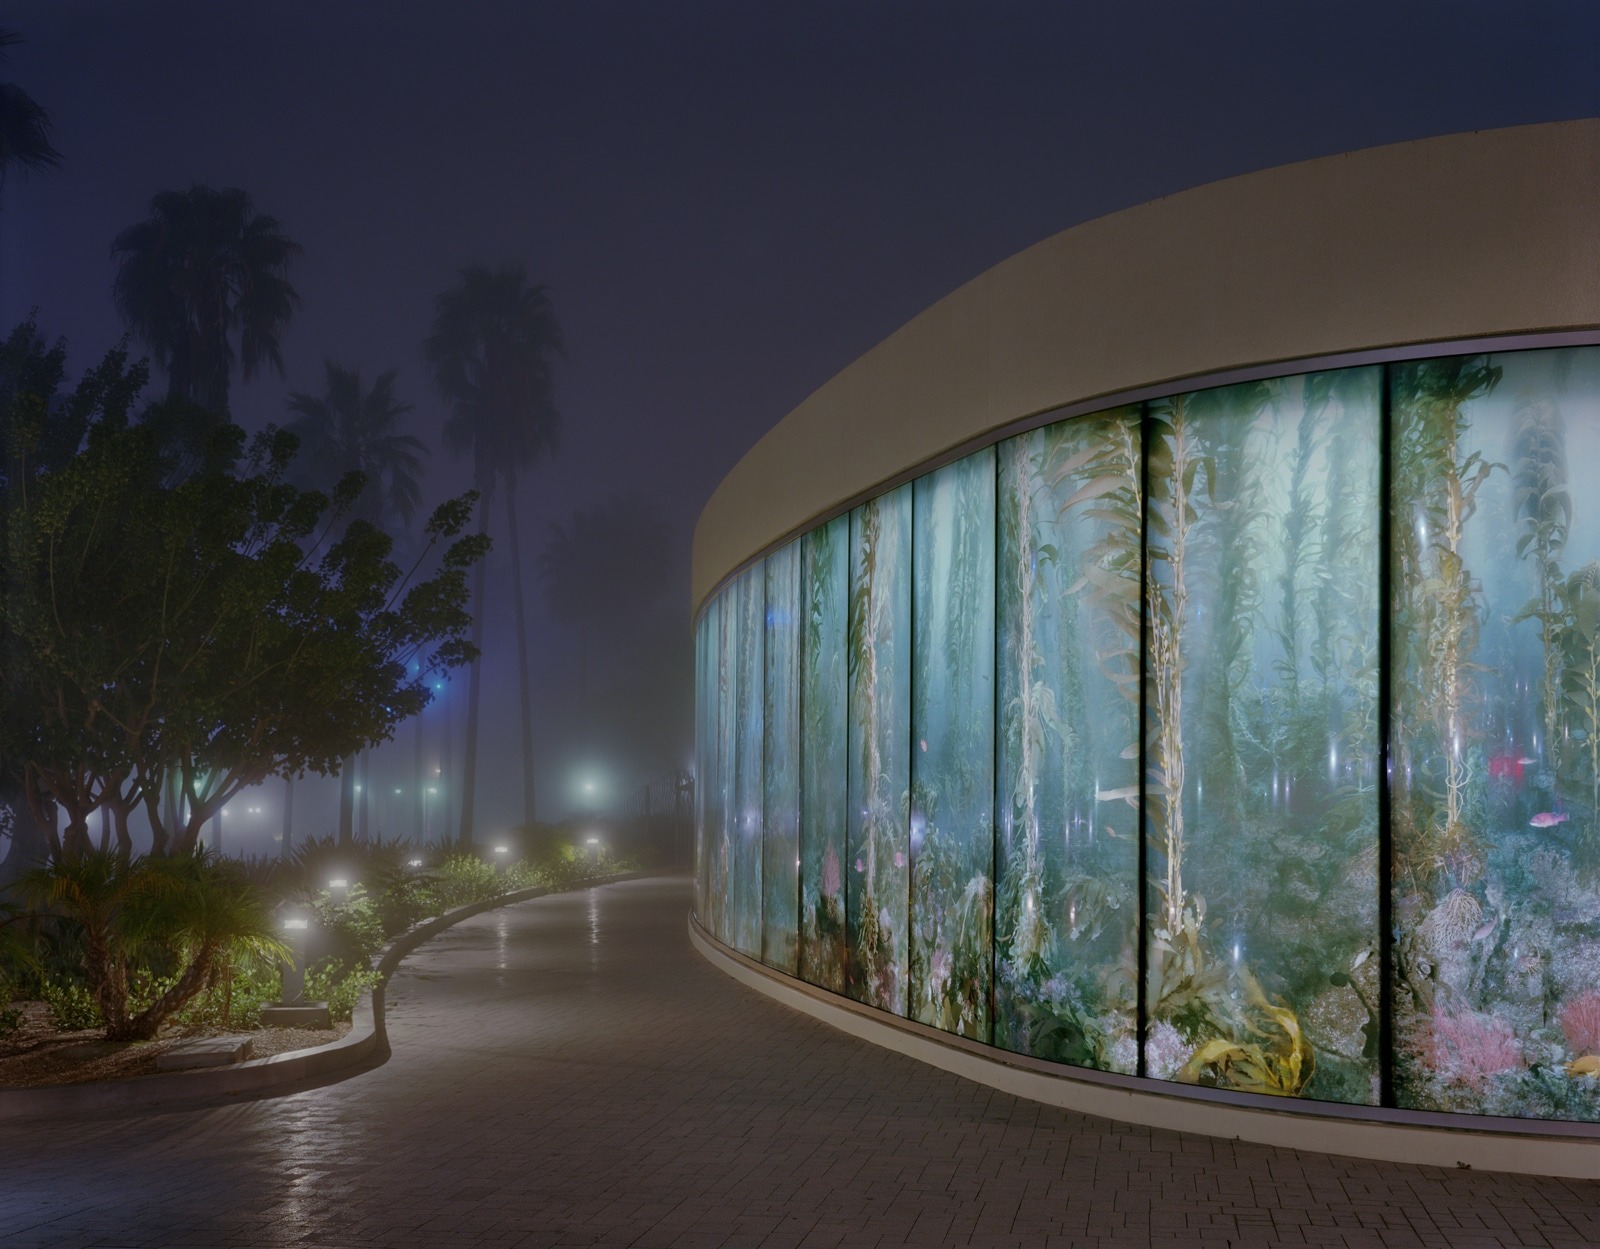 Aquarium in the Fog